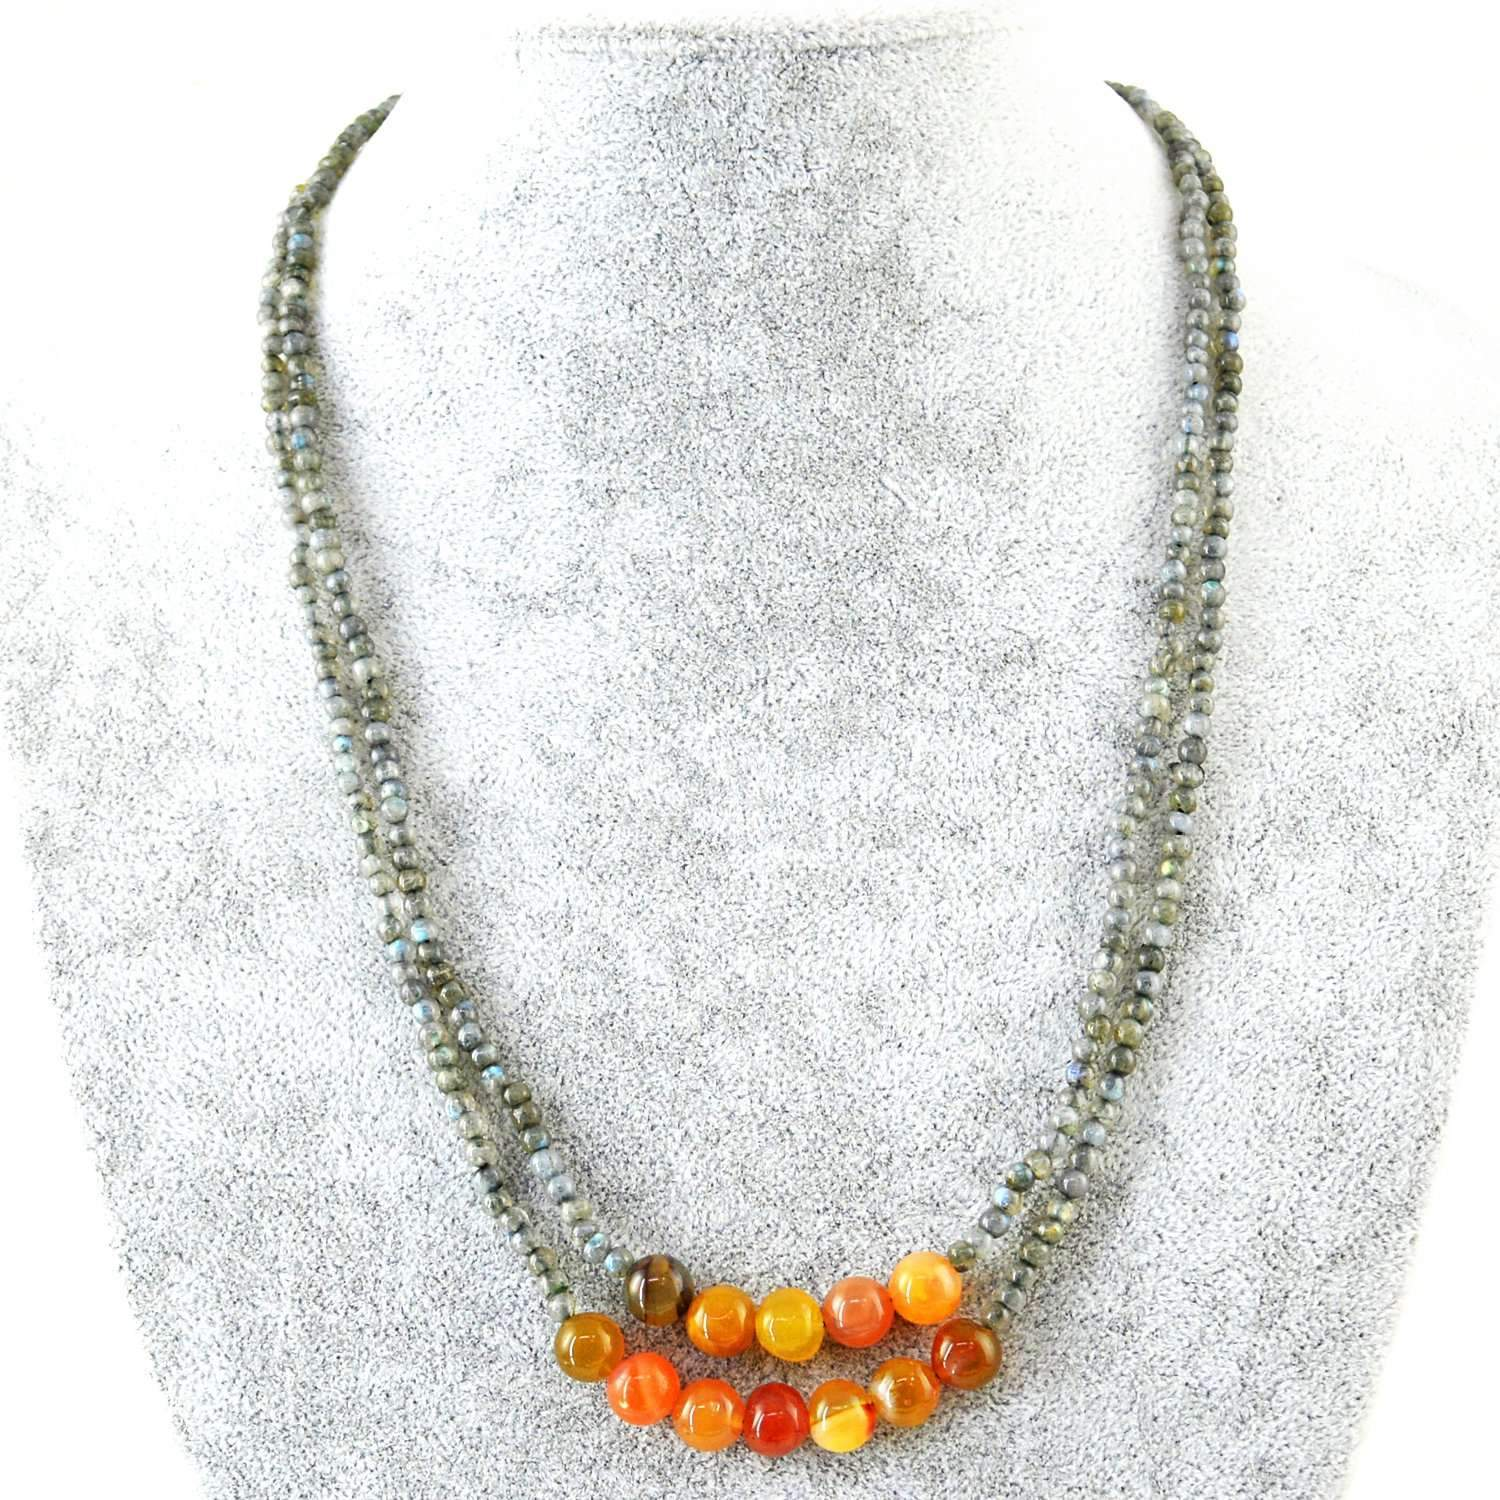 gemsmore:Natural Blue Flash Labradorite & Orange Onyx Necklace 2 Strand Untreated Beads